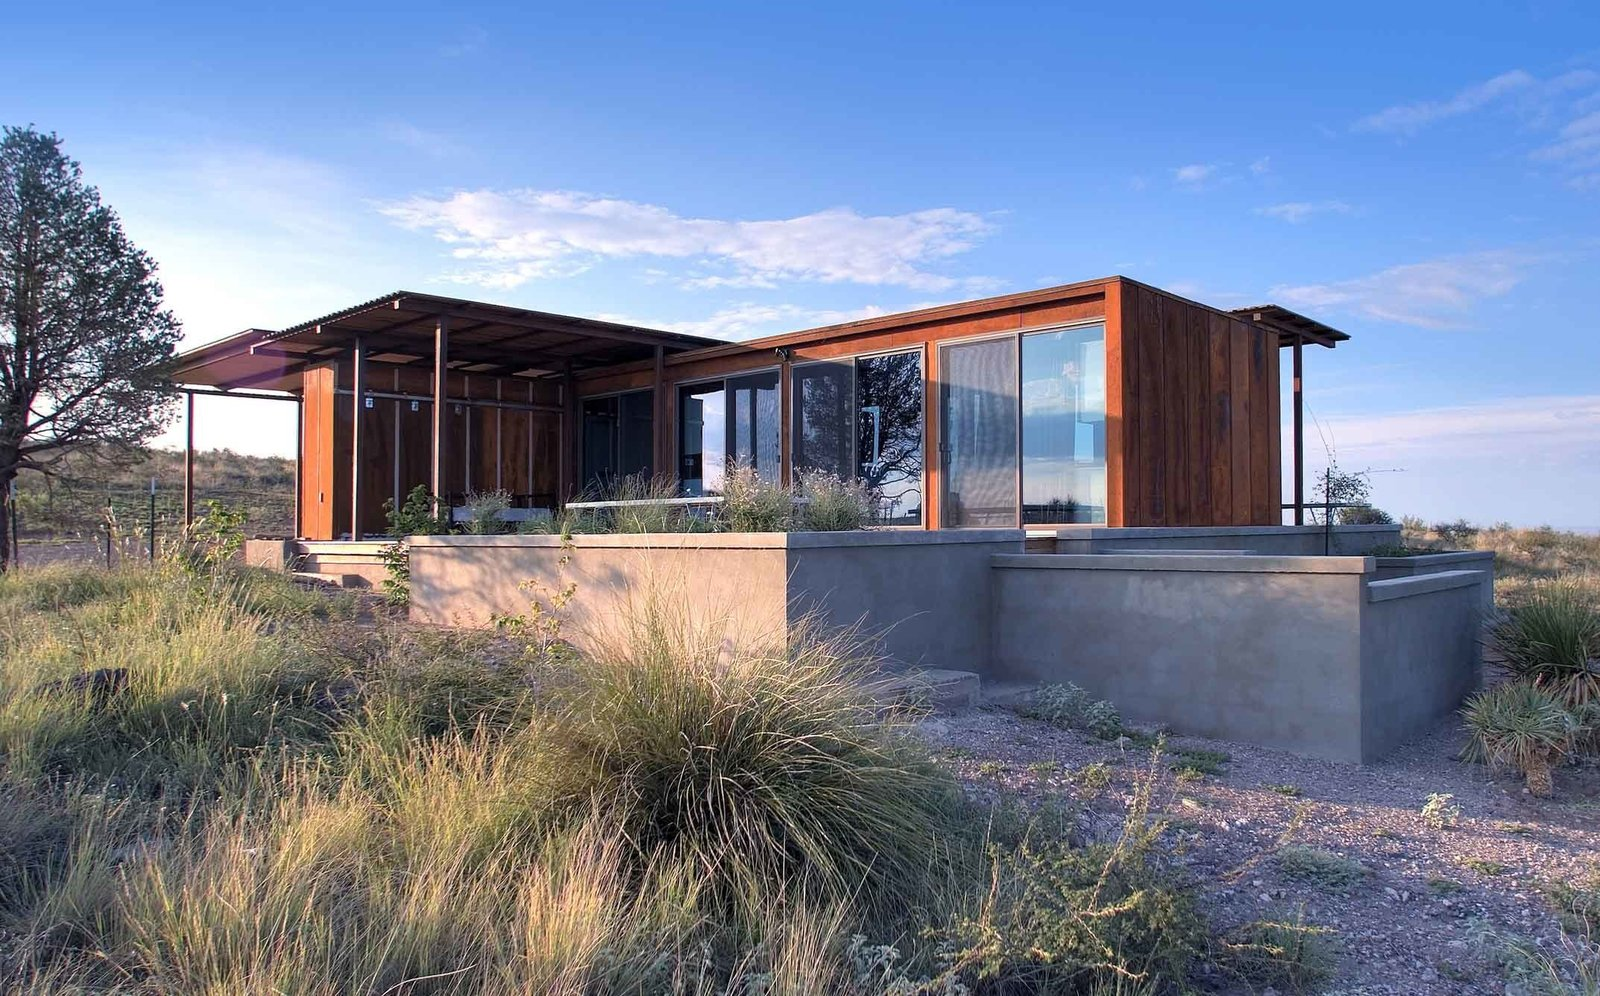 Home Tour: A Petite Prefab With Stunning Views of the Texas Landscape